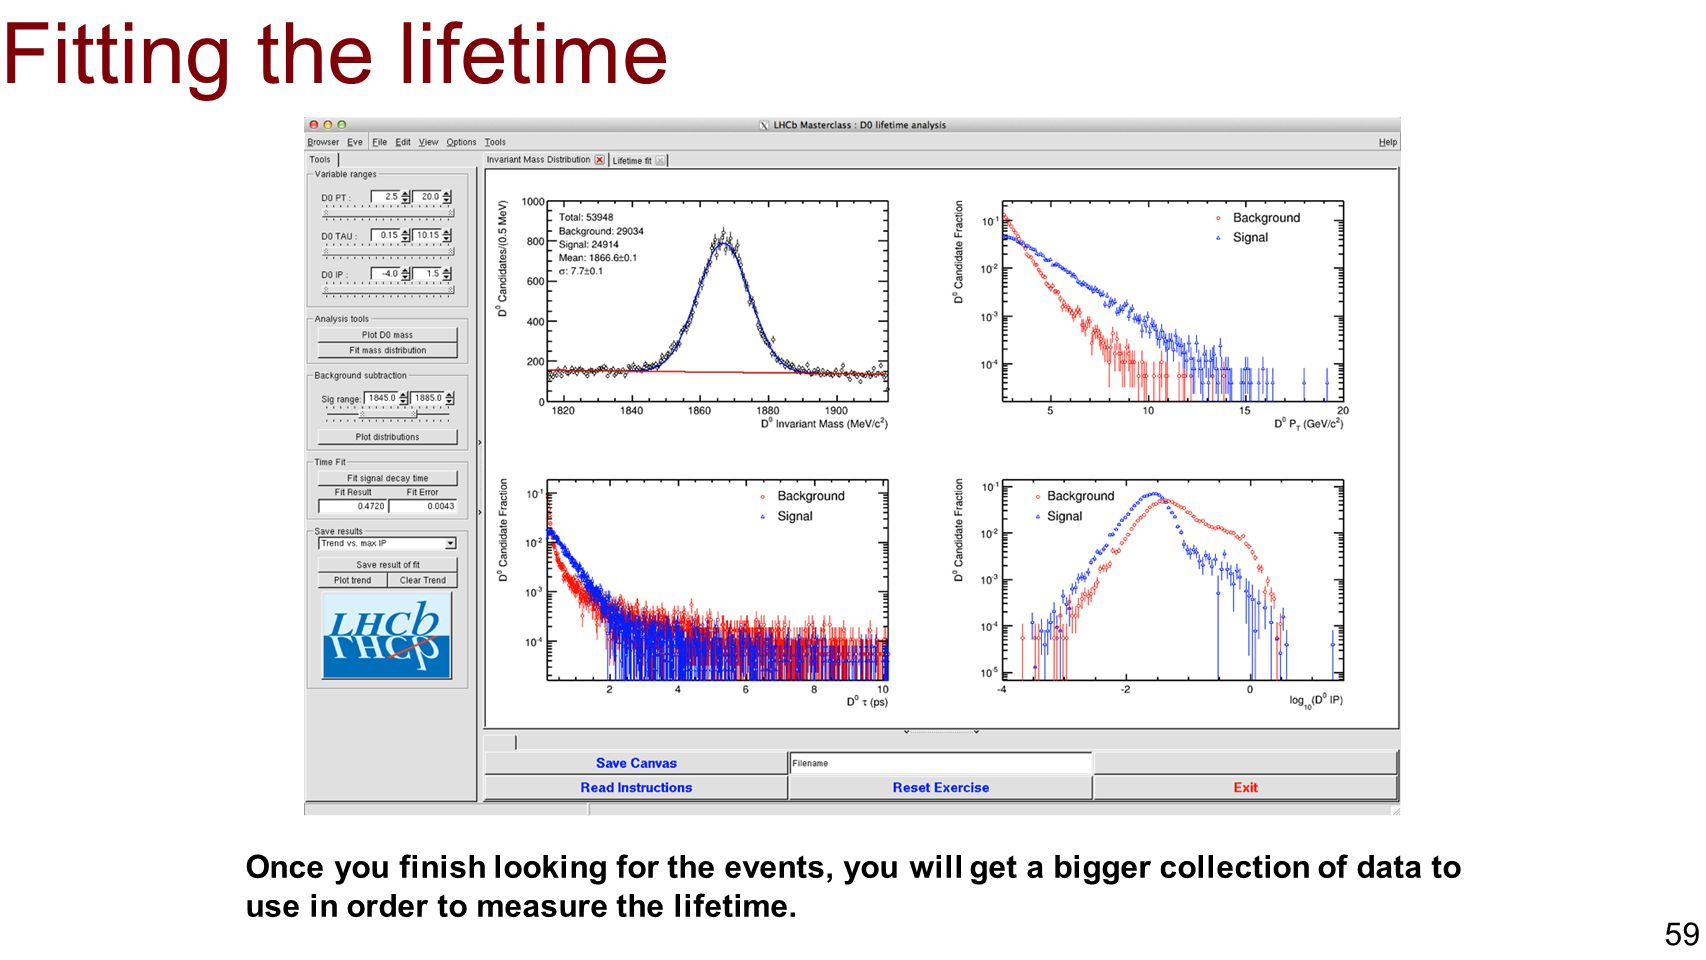 Fitting the lifetime Once you finish looking for the events, you will get a bigger collection of data to use in order to measure the lifetime.